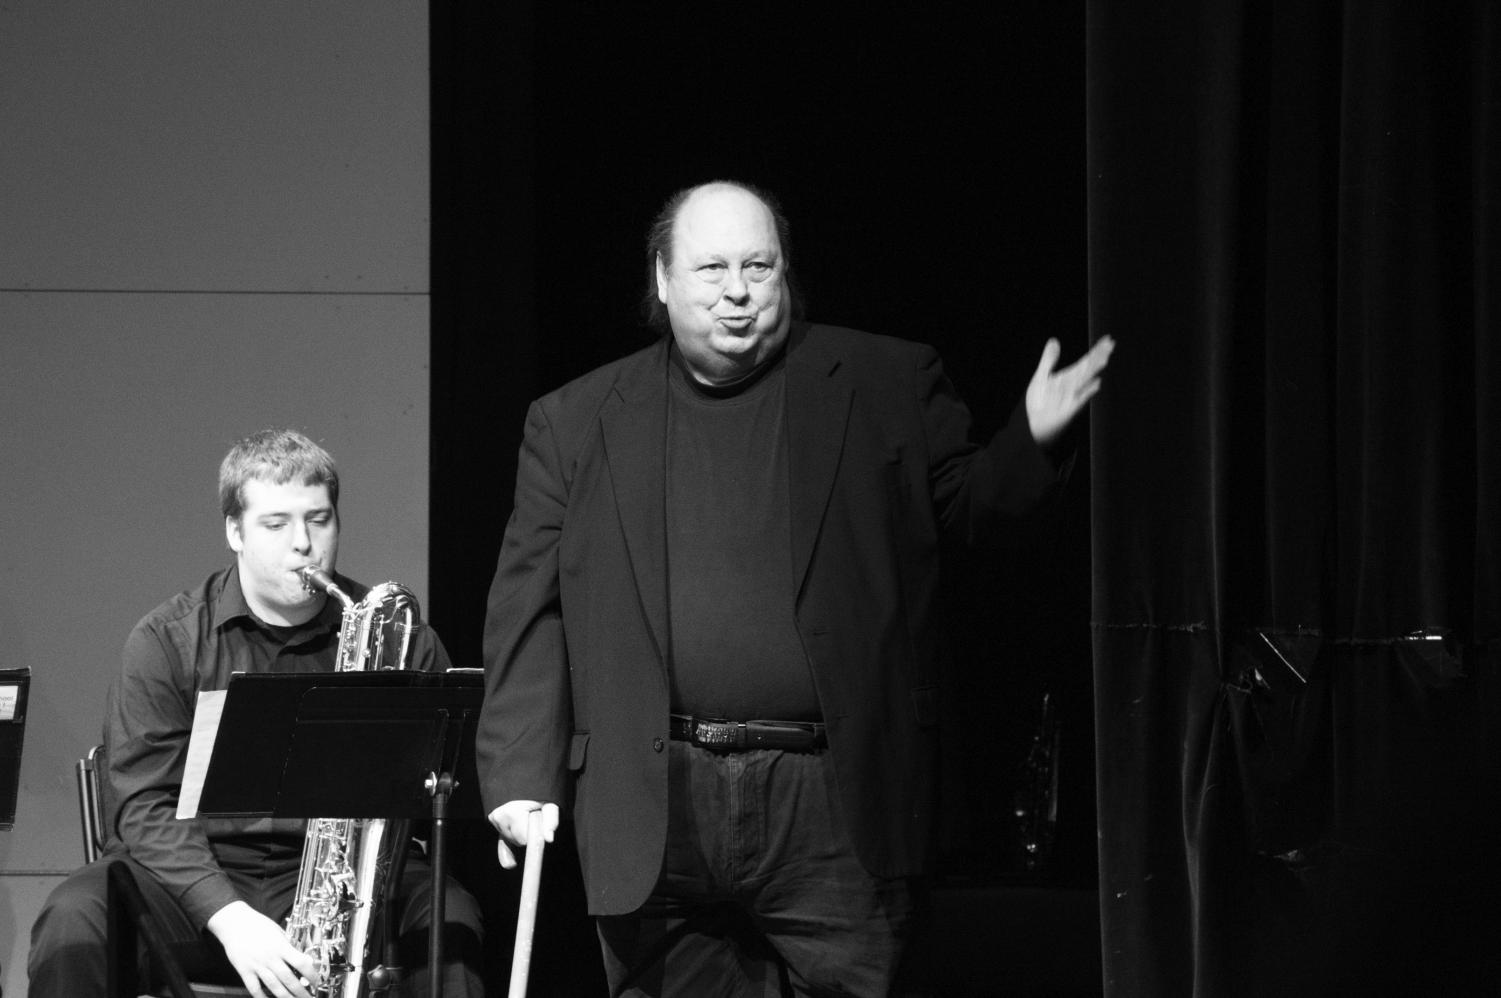 Woolery speaks at the beginning of  a Jazz concert in March 2017.